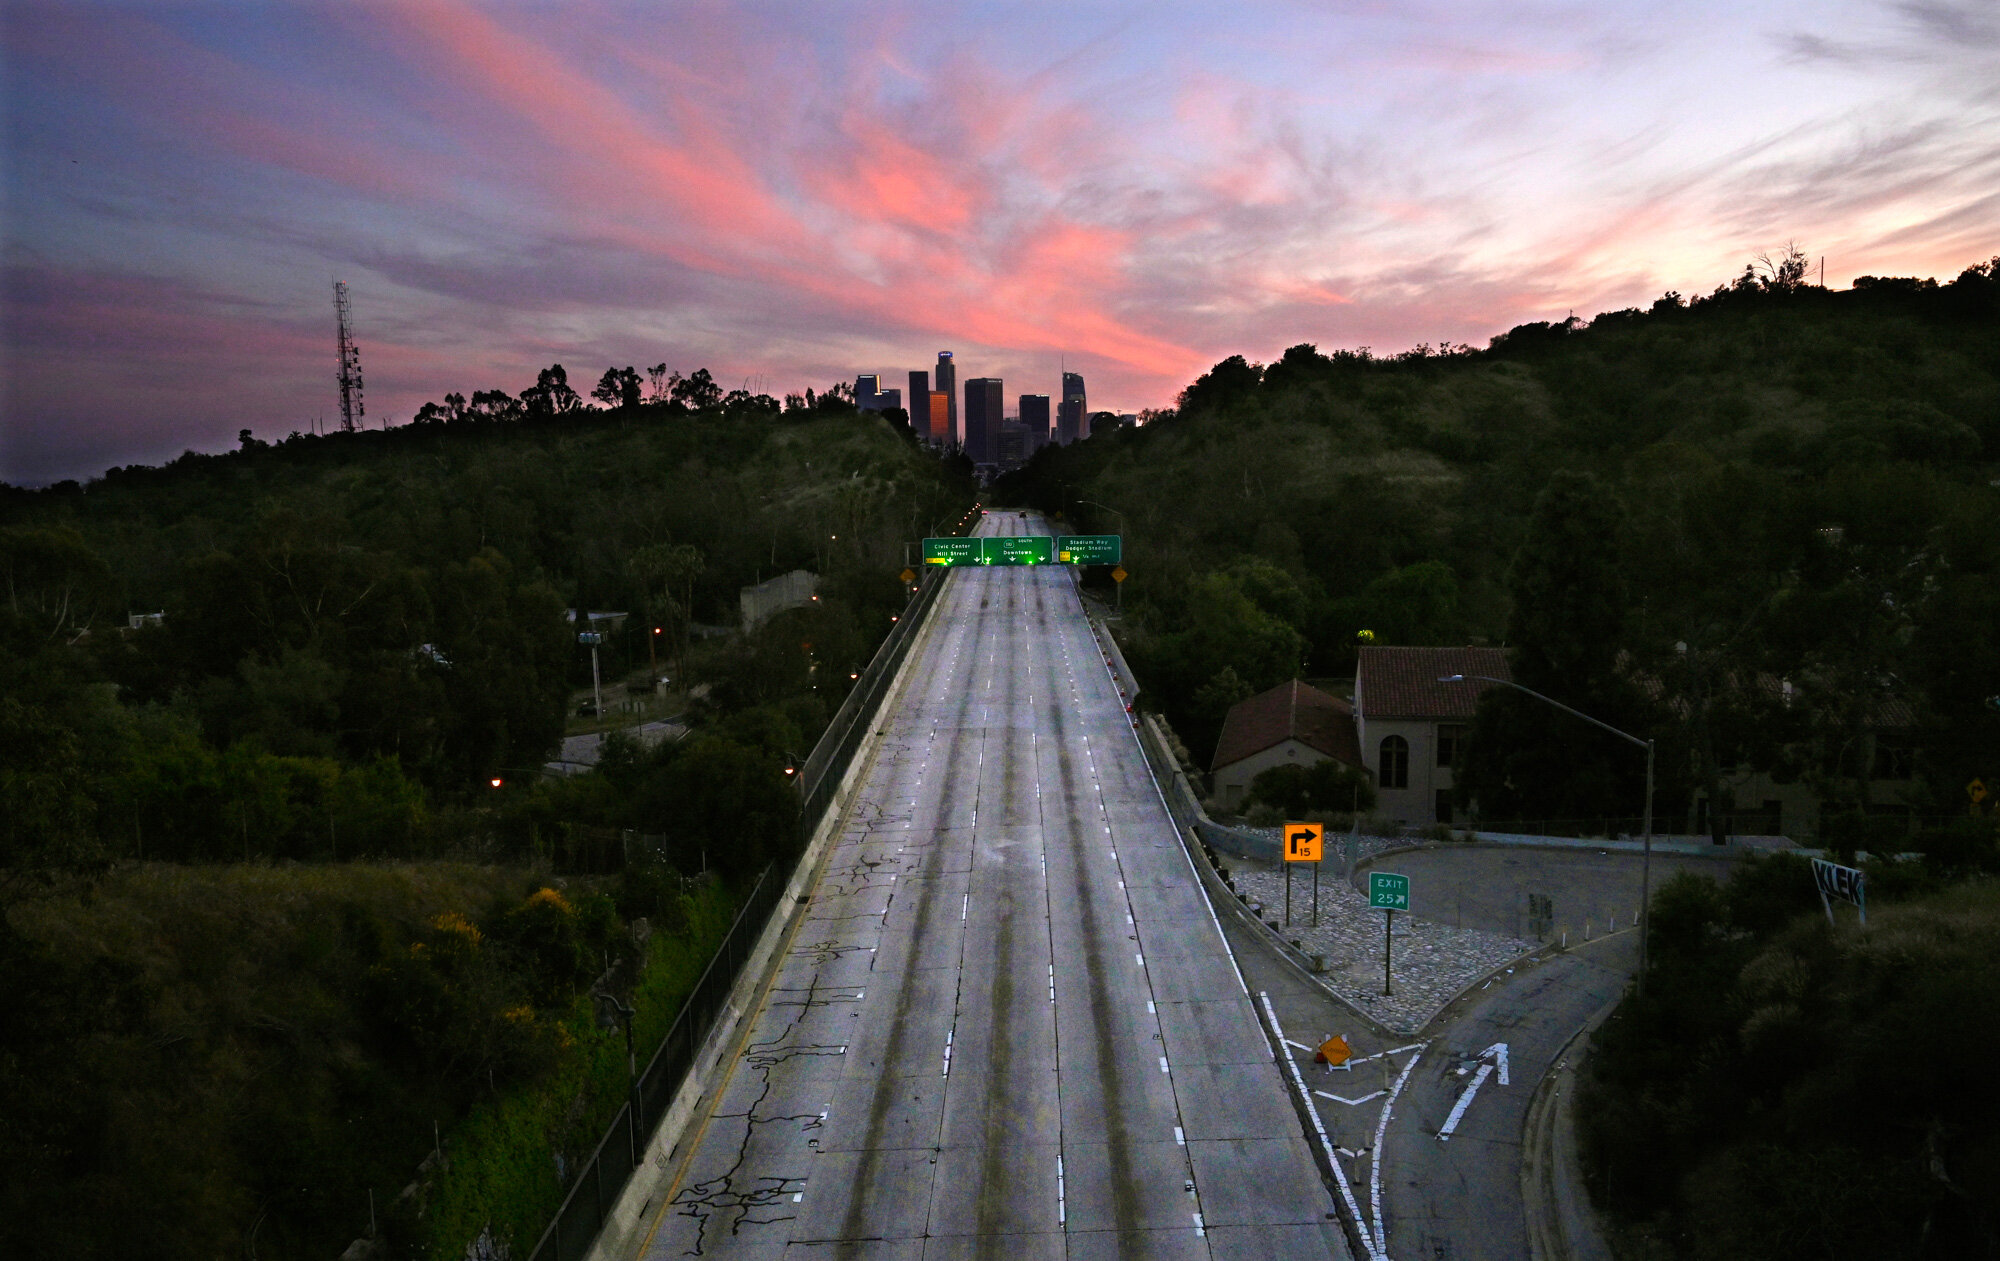 Lanes are empty on the 110 Arroyo Seco Parkway that leads to downtown Los Angeles on April 26, 2020, as California remains on lockdown to avoid the spread of the coronavirus. (AP Photo/Mark J. Terrill)